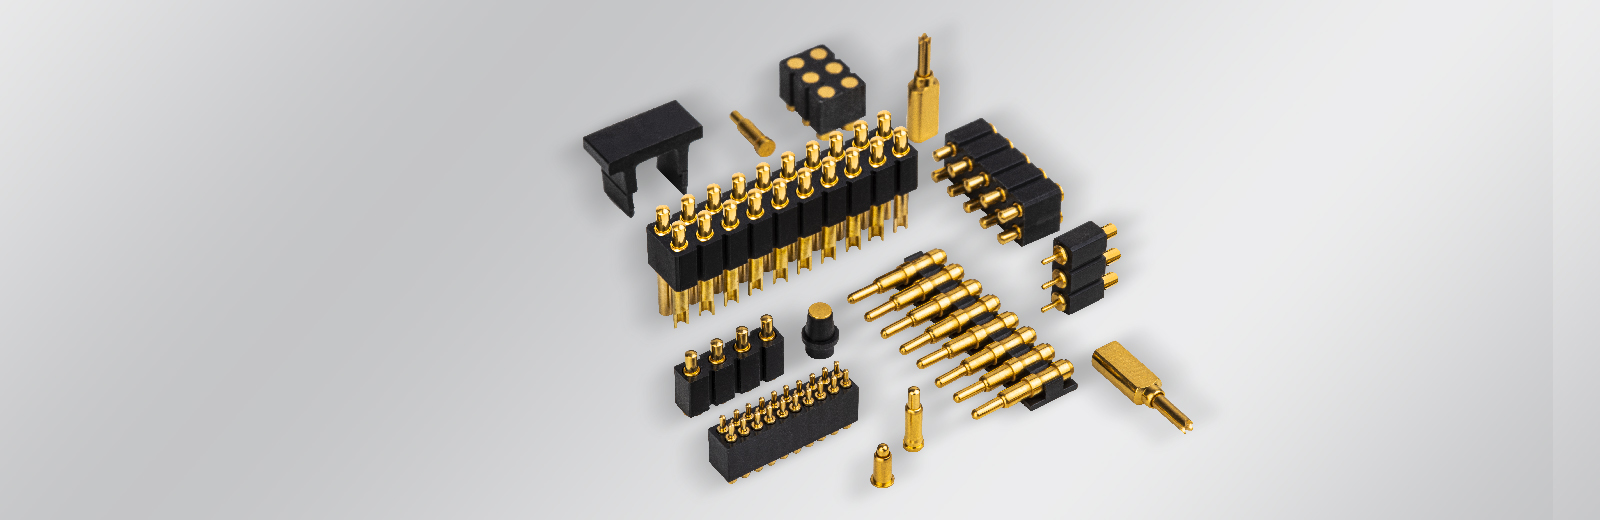 Test Probes as PCB Components